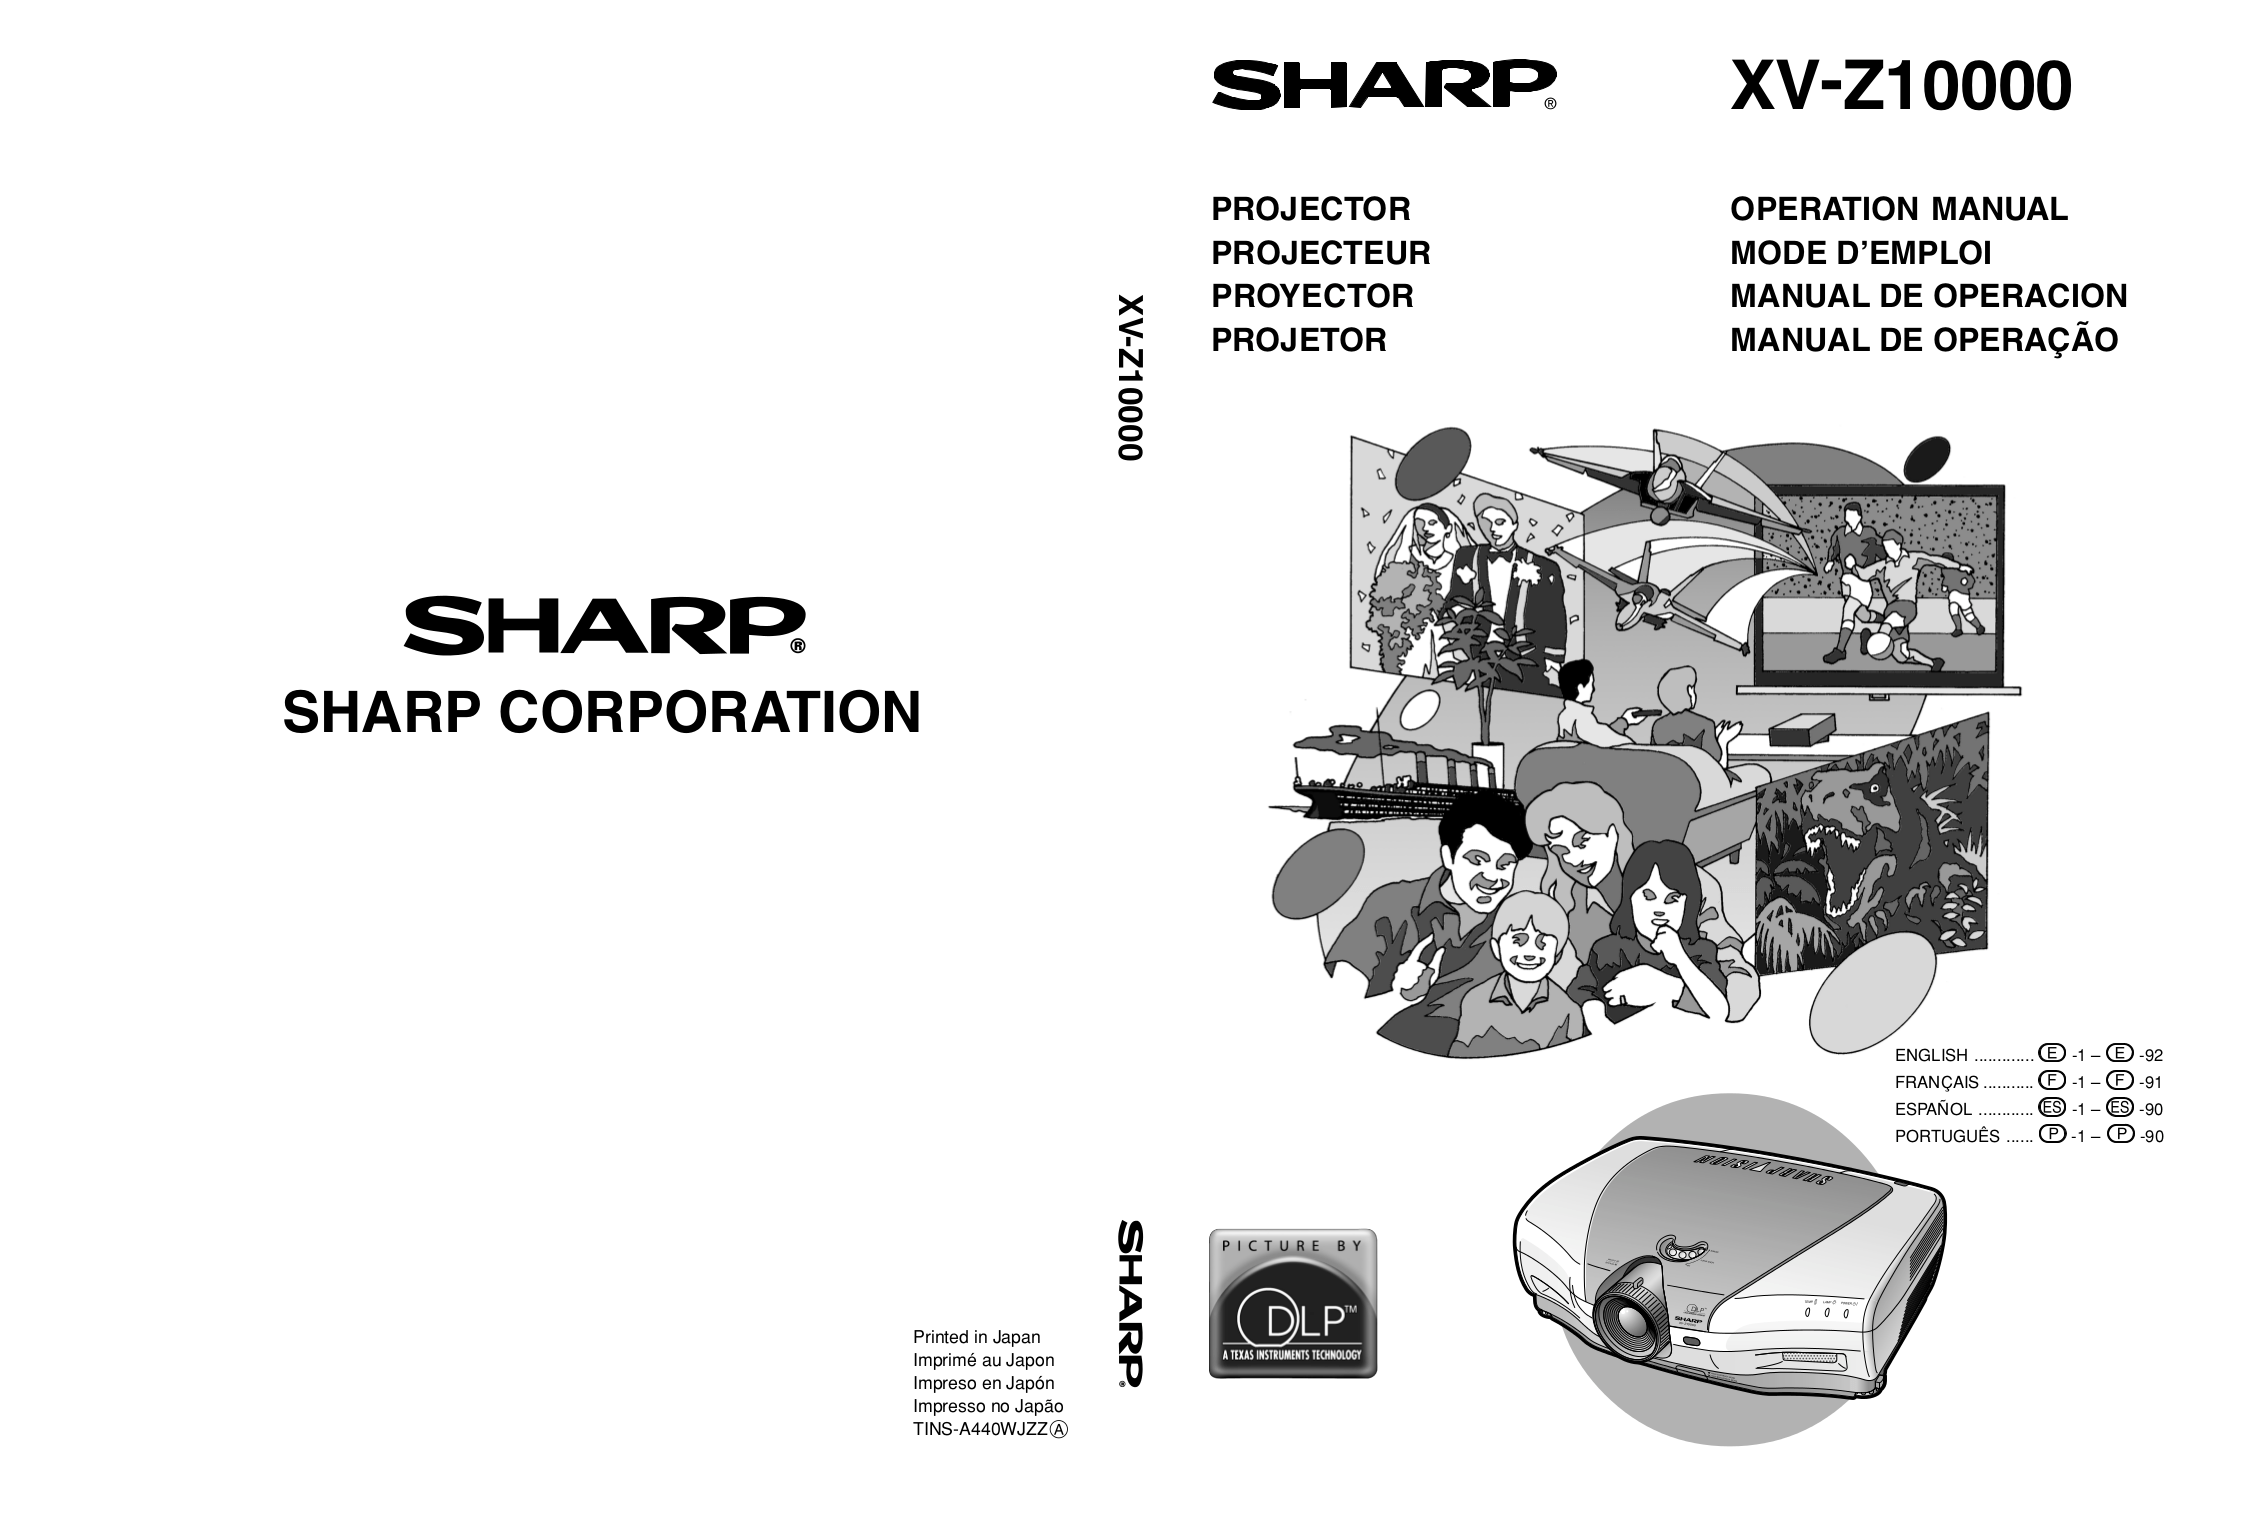 Download free pdf for Sharp Vision XV-Z10000 Projector manual